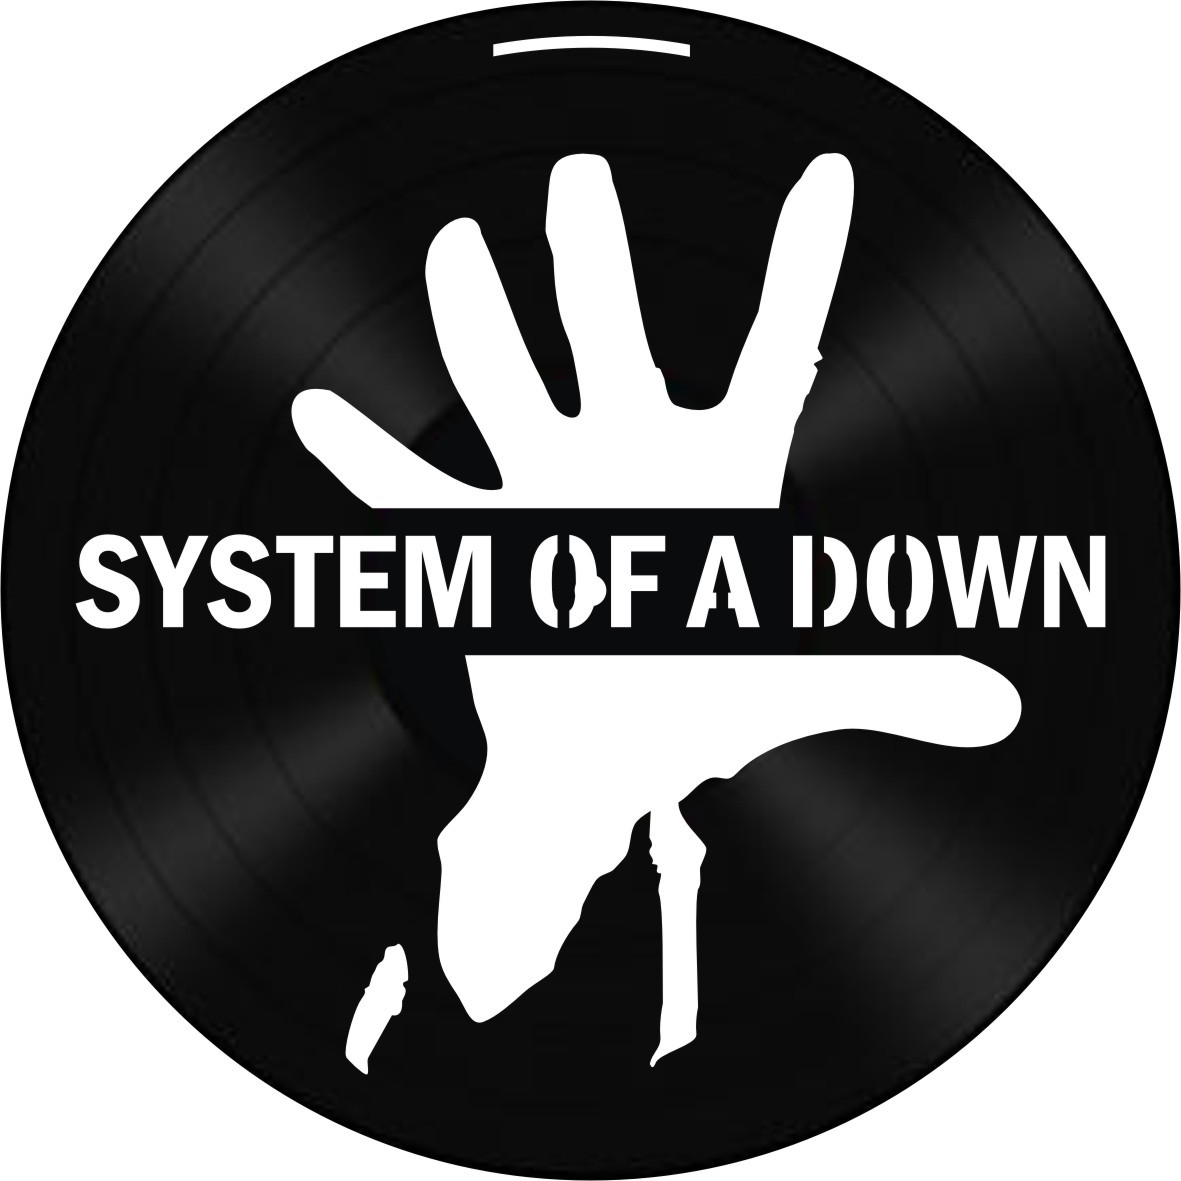 Disco de Vinil Decorativo System of a Down